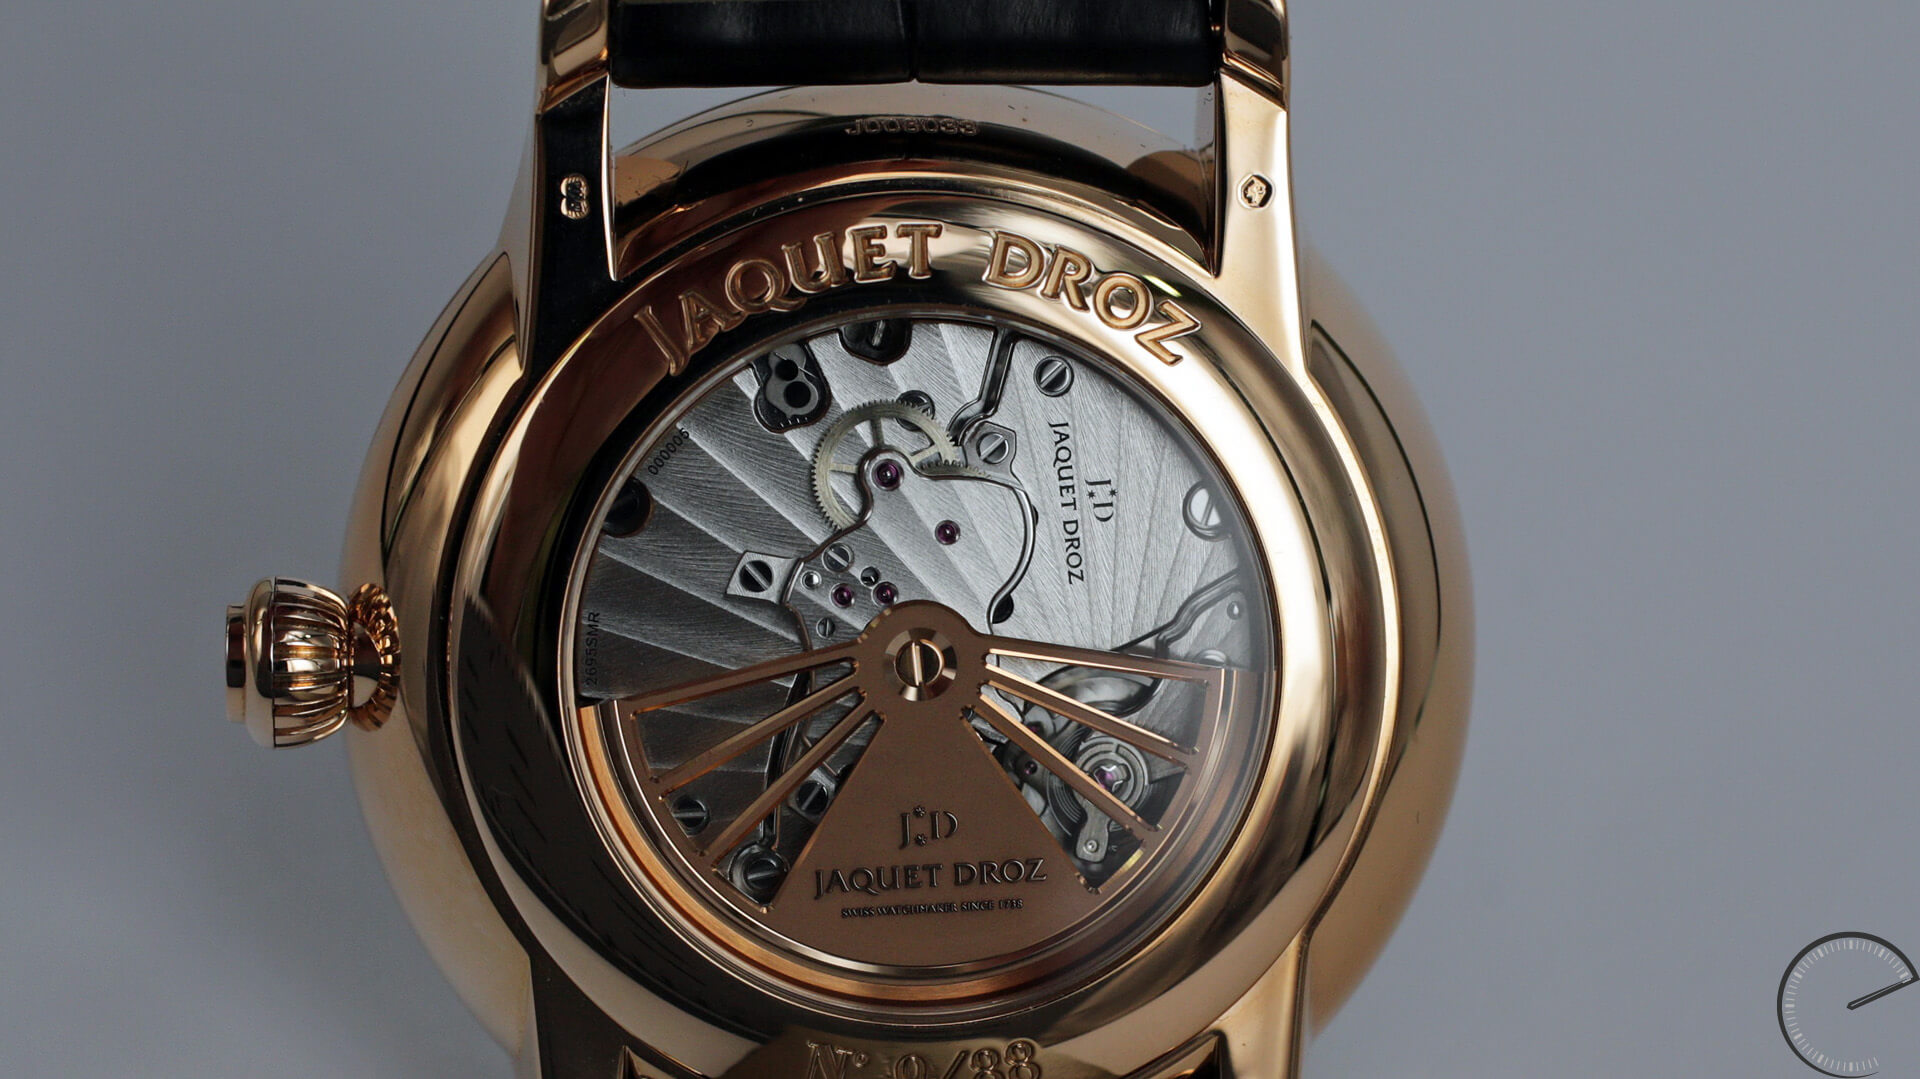 Jaquet_Droz_Grande_Seconde_Deadbeat_back - ESCAPEMENT watch reviews by Angus Davies